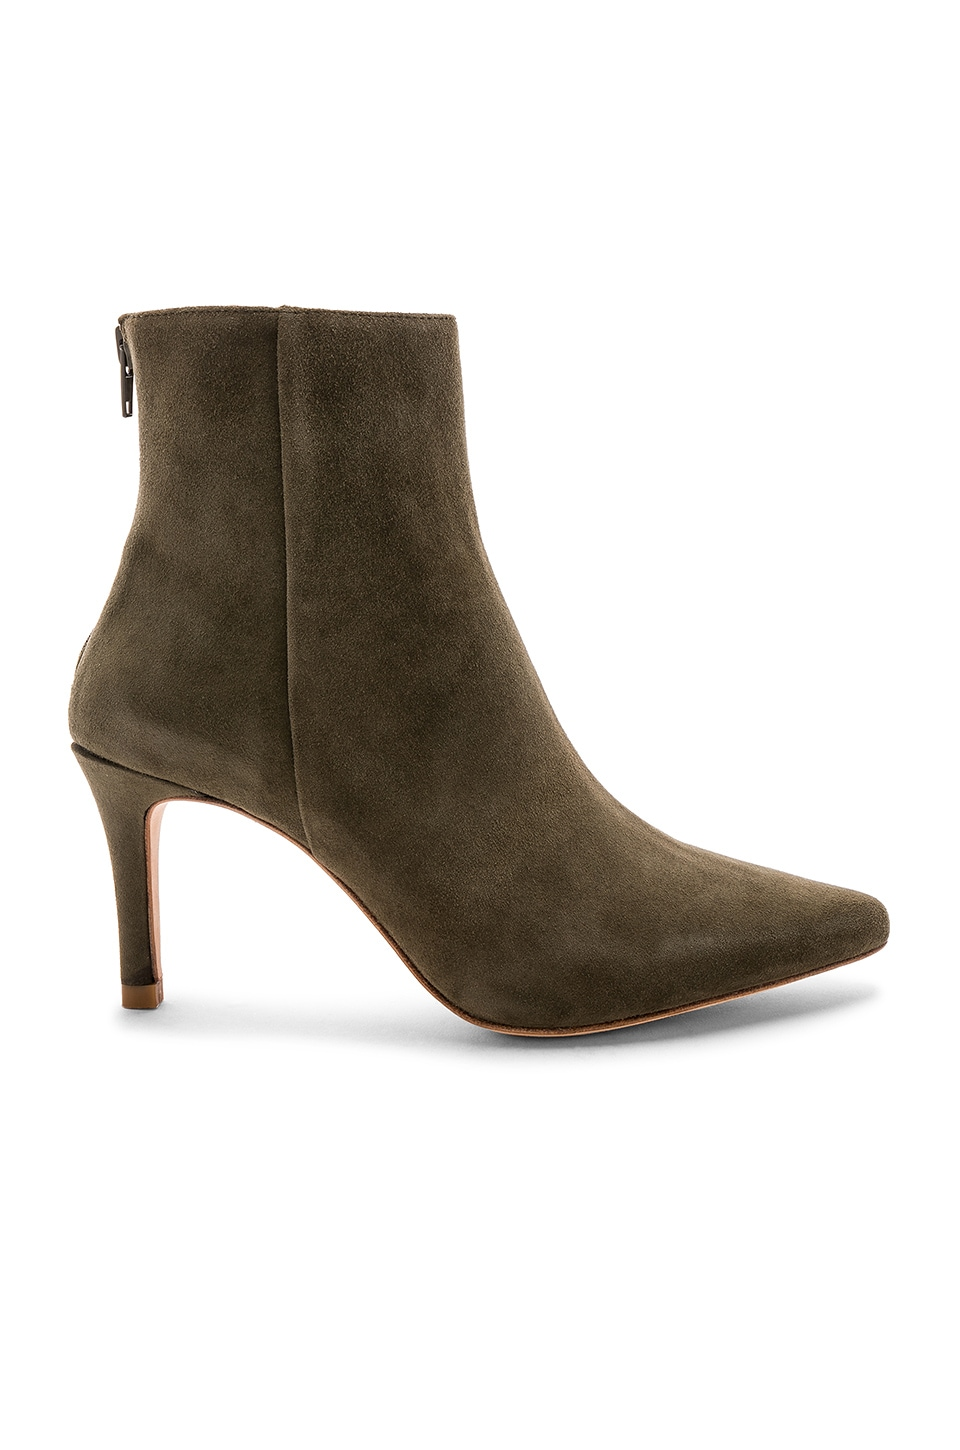 RAYE x House Of Harlow 1960 Lily Bootie in Olive